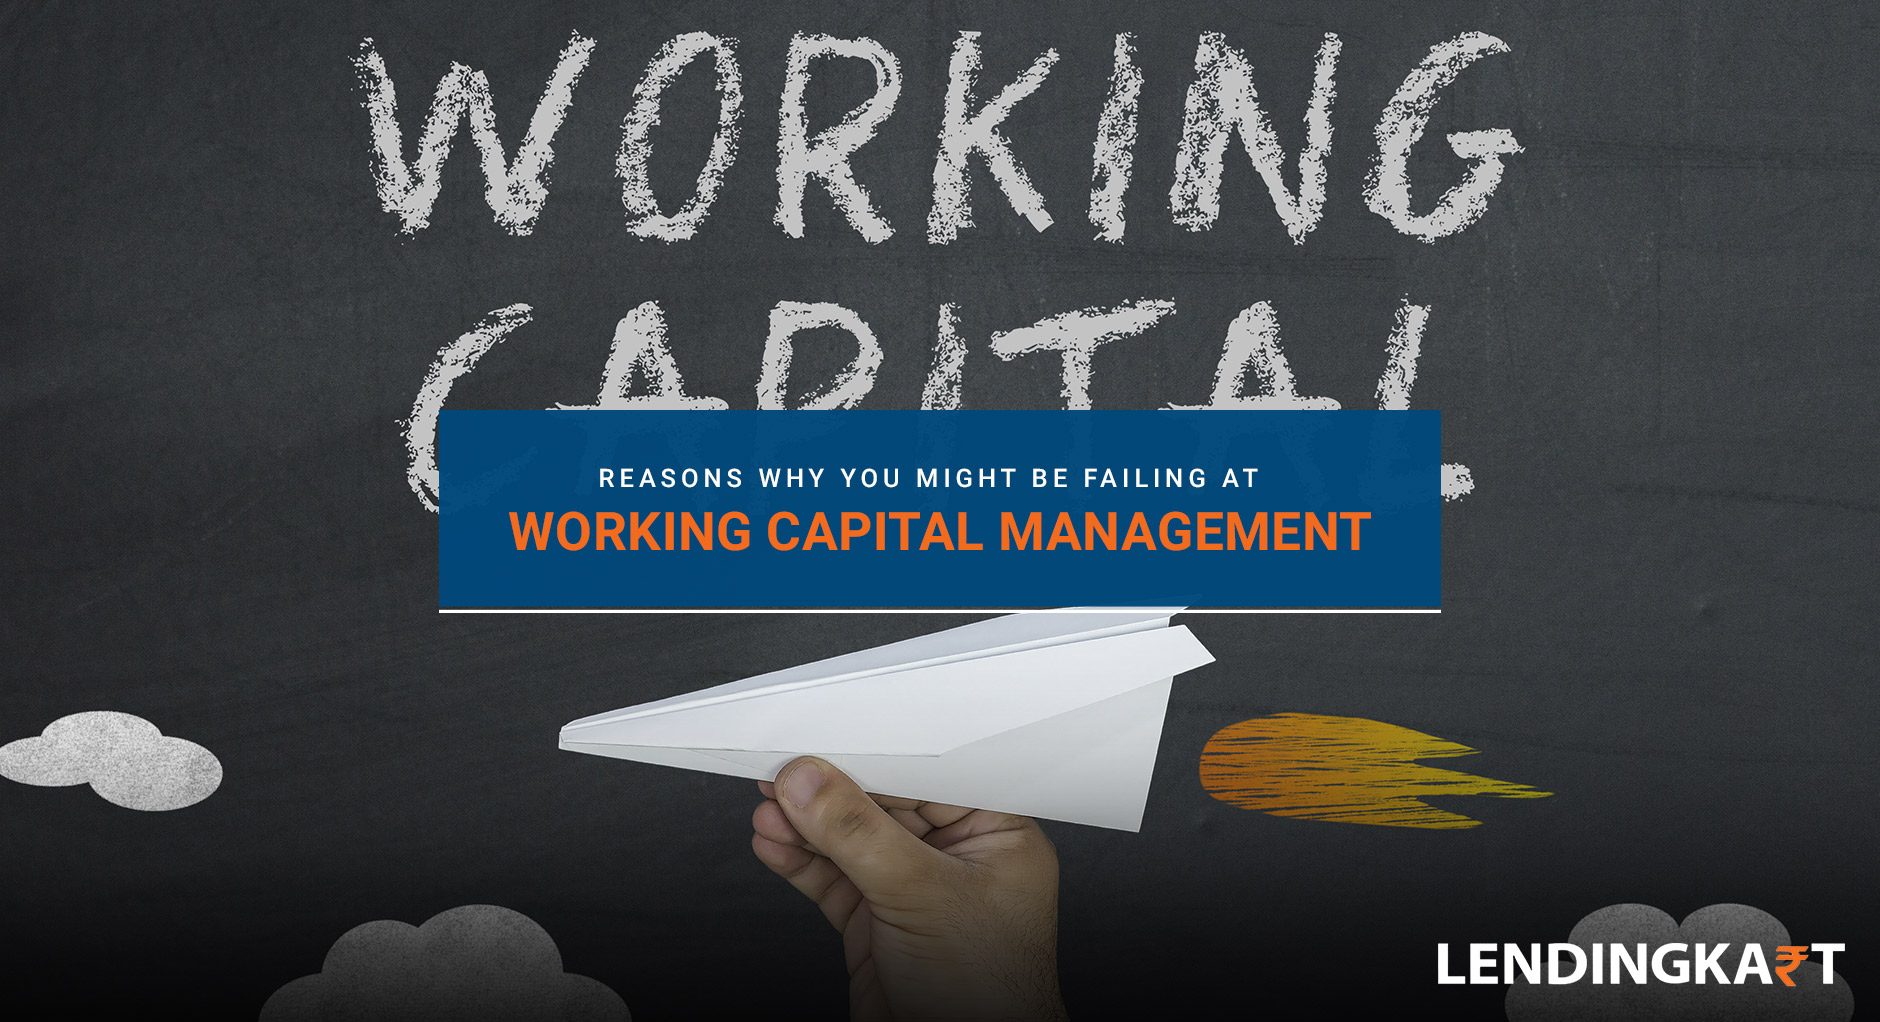 Reasons Why You Might Be Failing At Working Capital Management